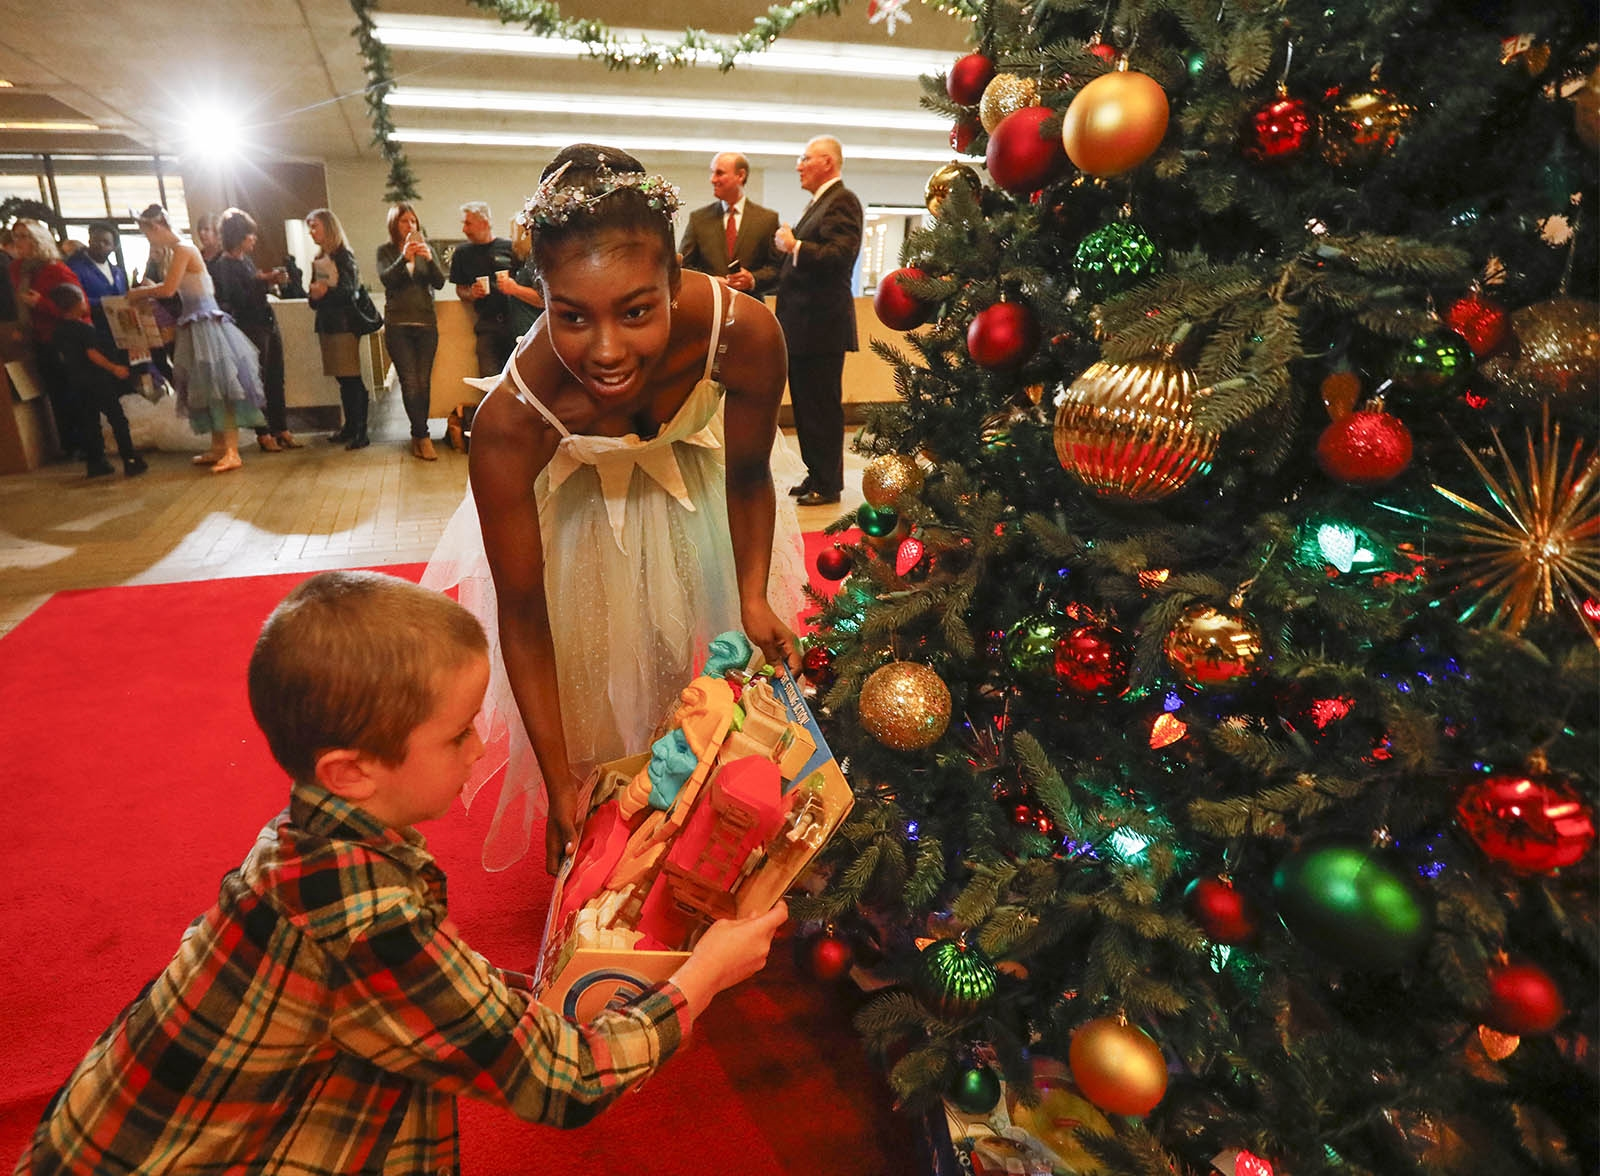 Houghton Academy kindergarten student Owen Geiger, 5, and Neglia Ballet dancer Amirah Muhammad, 16, help place presents under the tree during the kickoff of the annual News Neediest drive in the lobby of The Buffalo News.